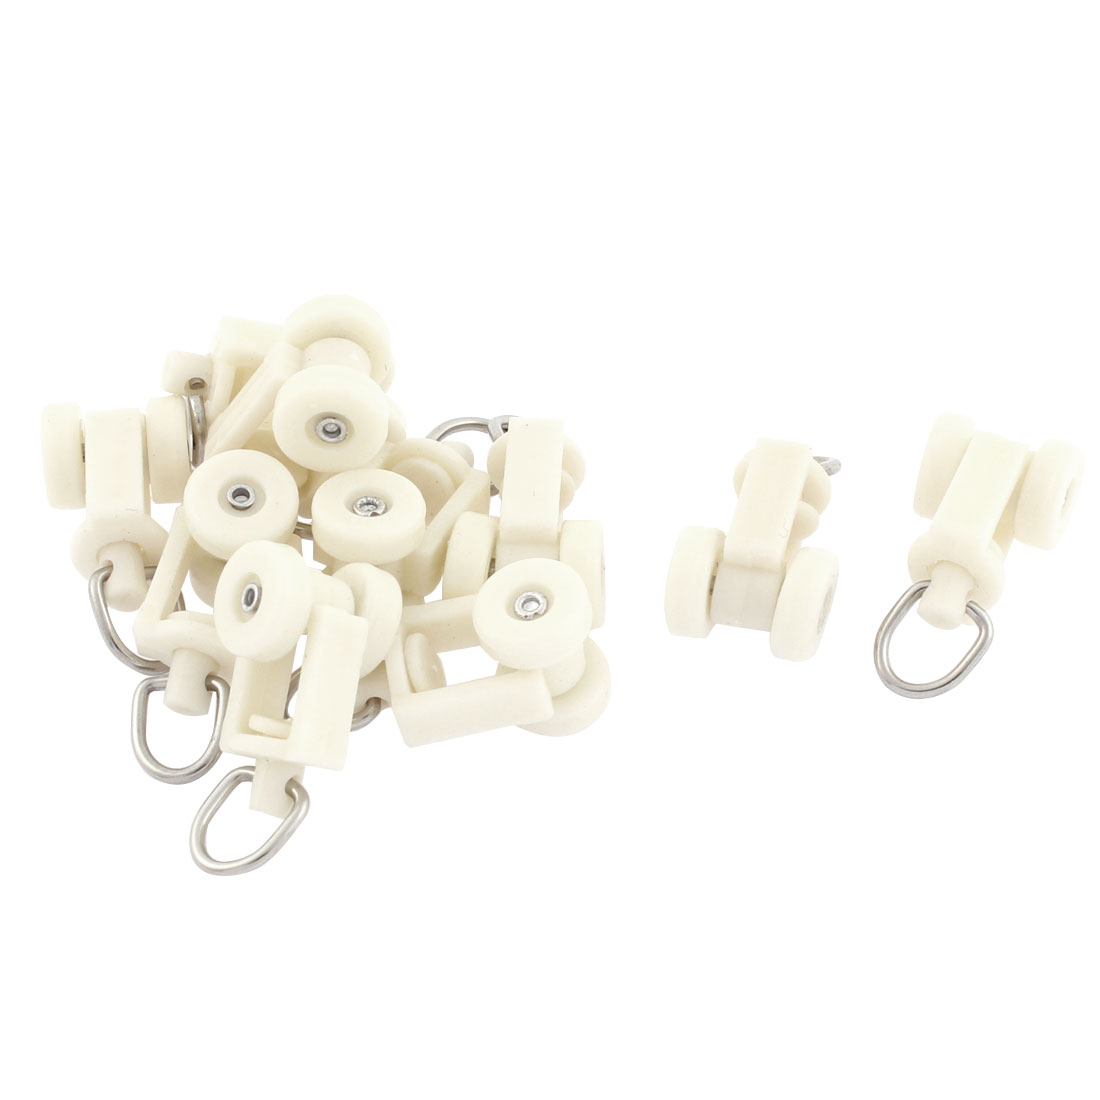 Home Plastic Curtain Track Carrier Roller 11mm Dia Wheel White 10 Pcs